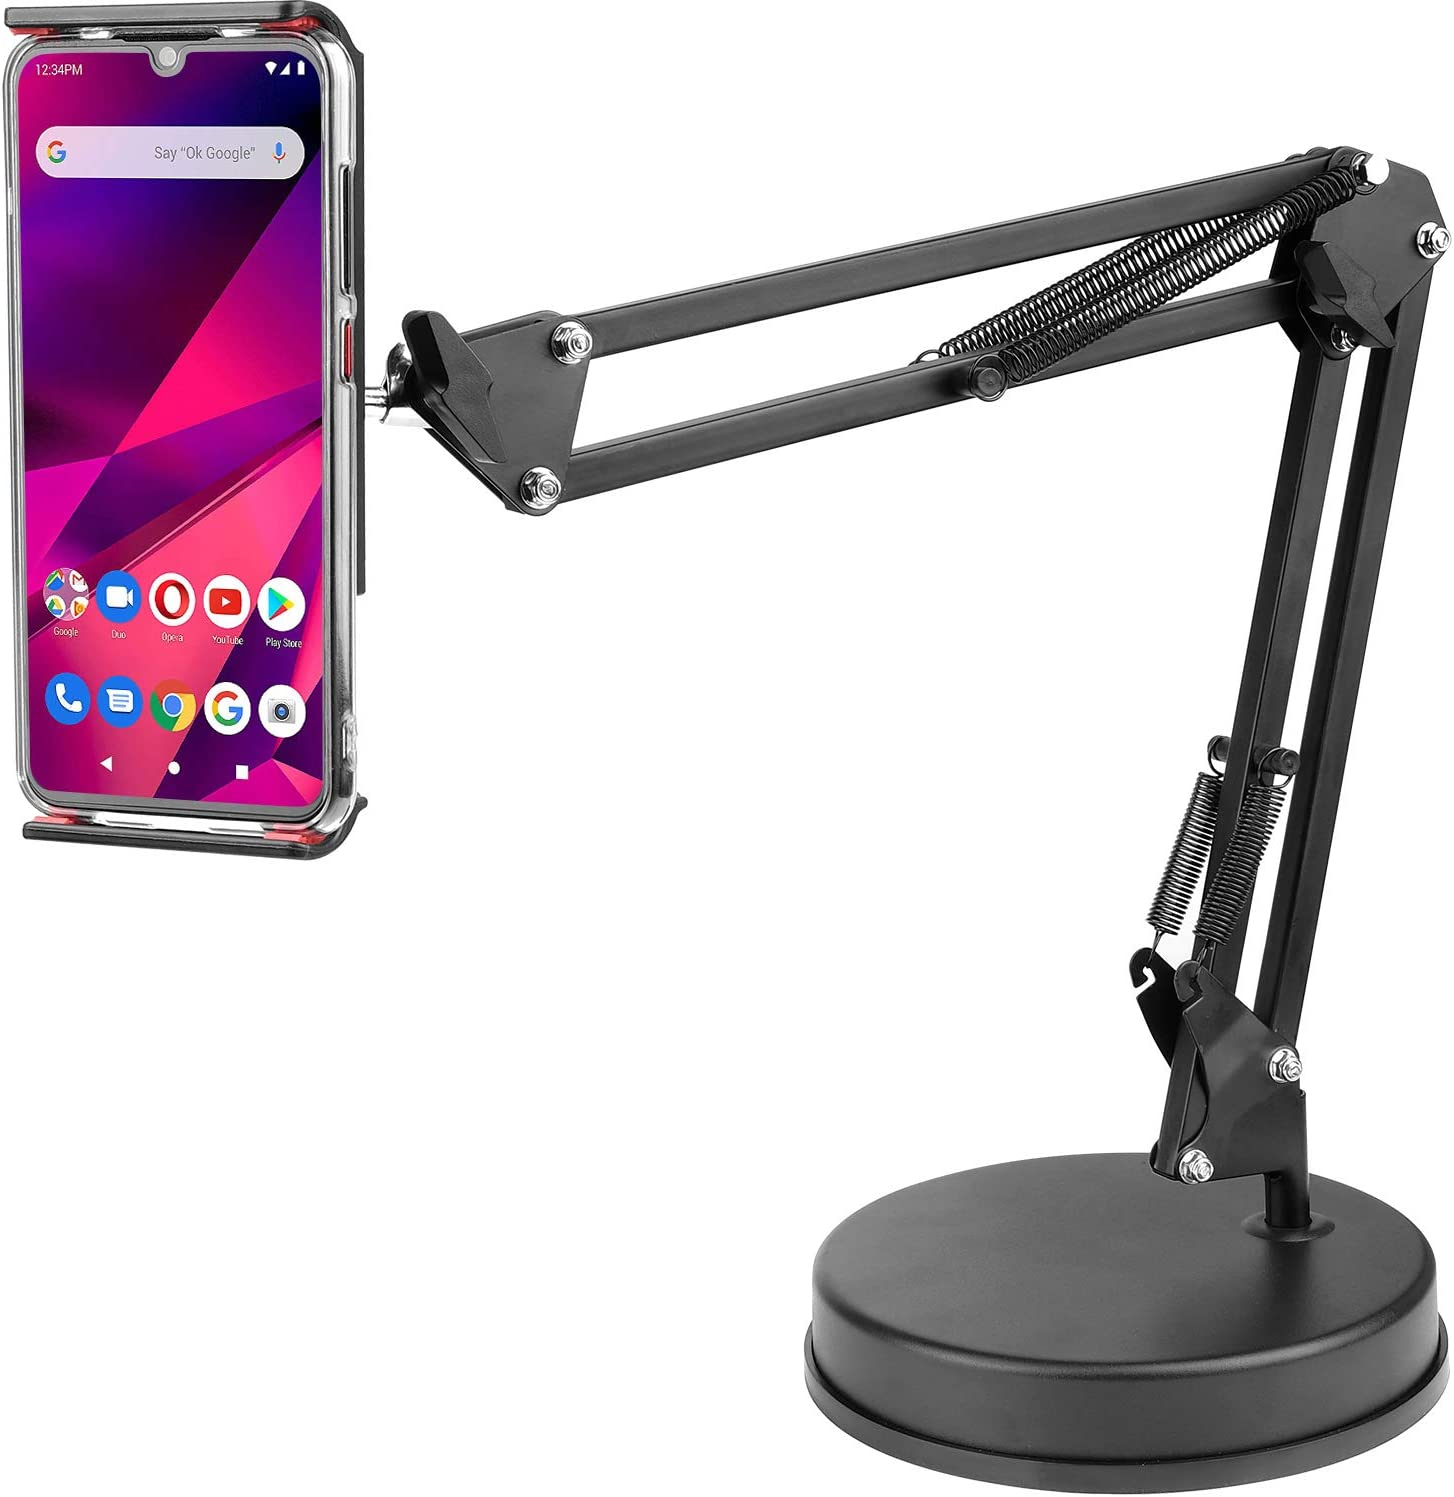 Overhead Phone Mount Stand ChromLives Phone Video Stand Articulating Arm Phone Mount Table Top with Base Adjustable 360° Cell Phone Tablet Holder Mount Desktop Compatible with Phones, Tablets, iPad